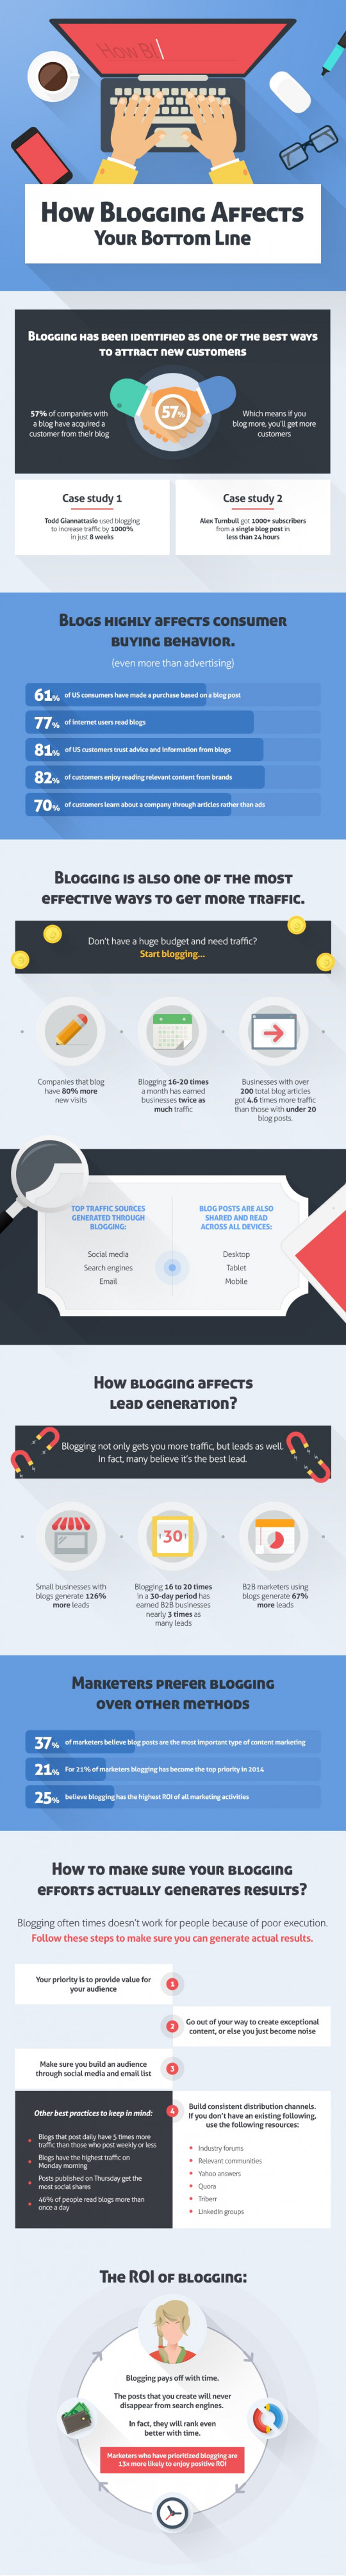 How Blogging Improves your Bottom Line?